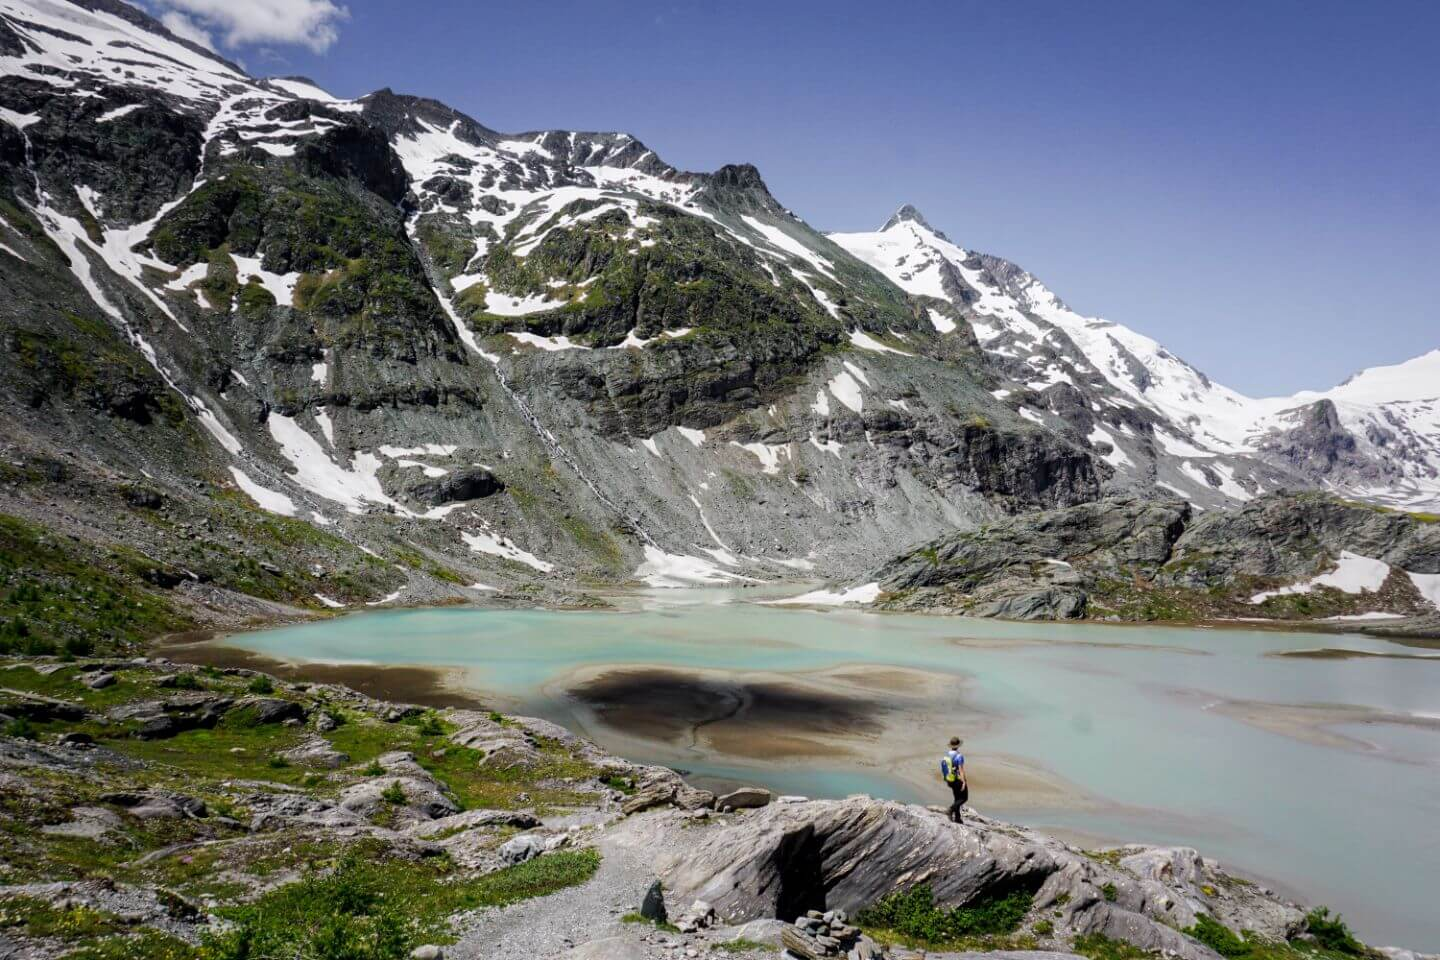 Sandersee, Hohe Tauern National Park - where to hike along the Grossglockner High Alpine Road, Austria